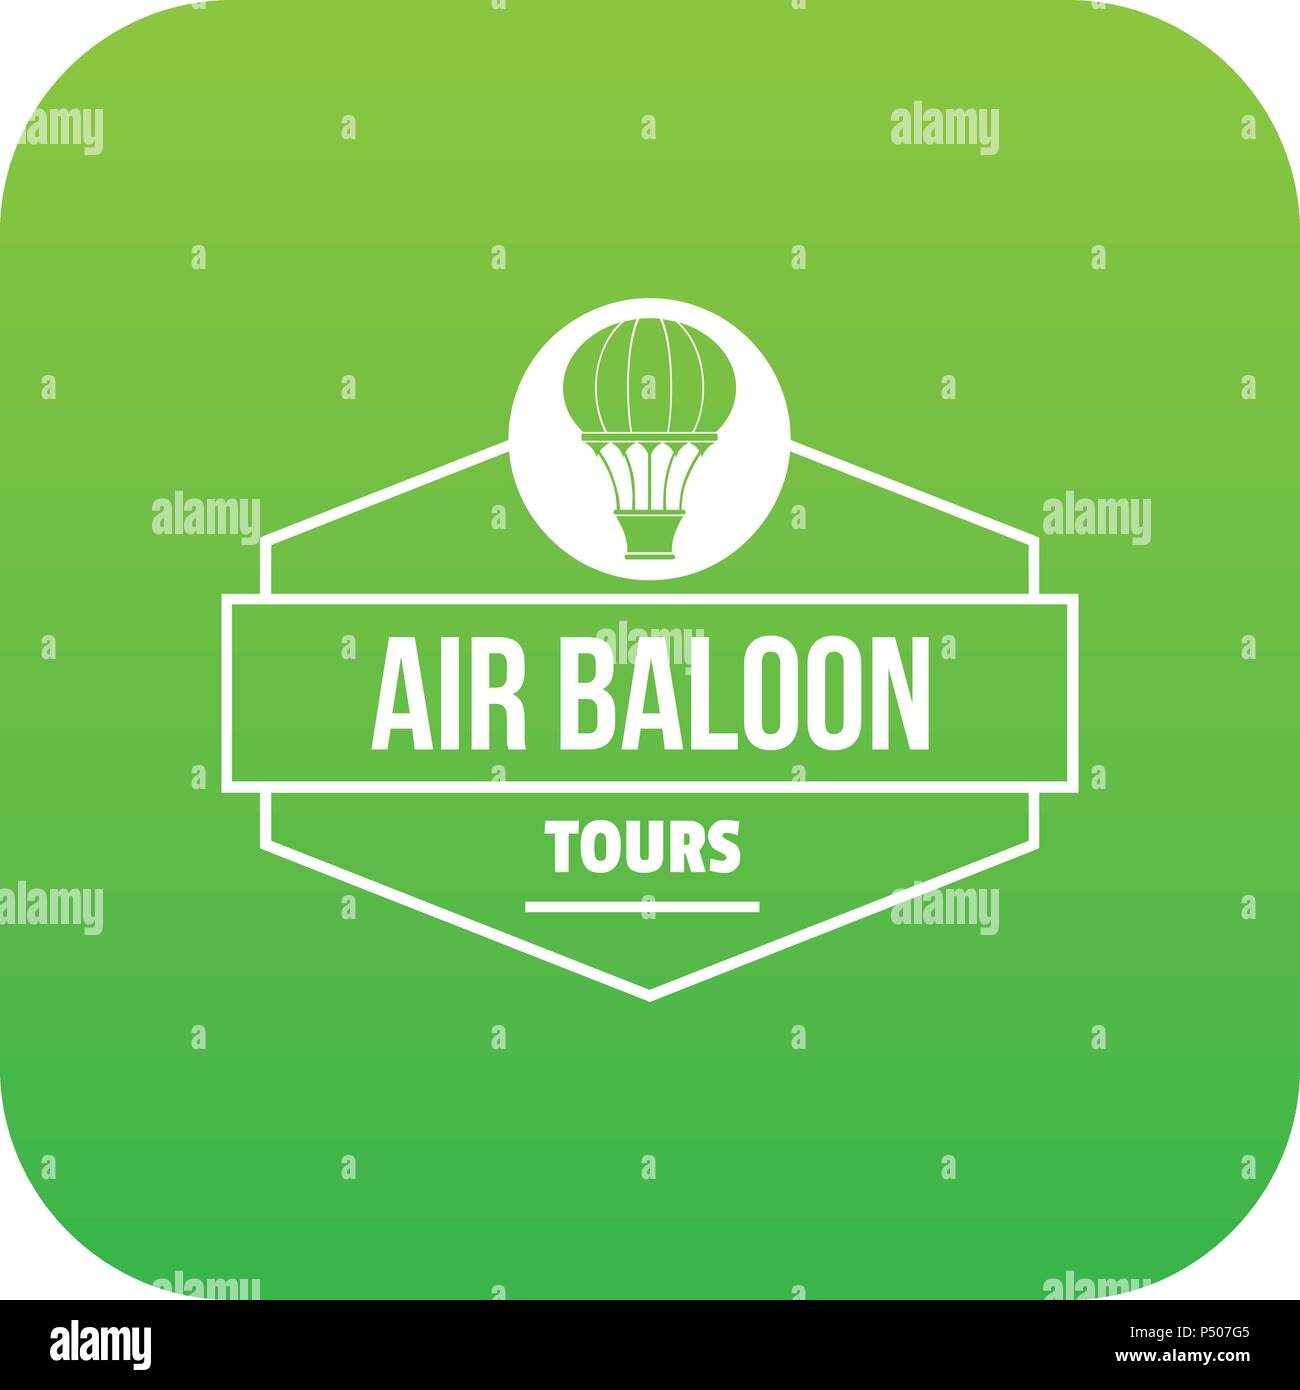 Tours air balloon icon green vector - Stock Vector